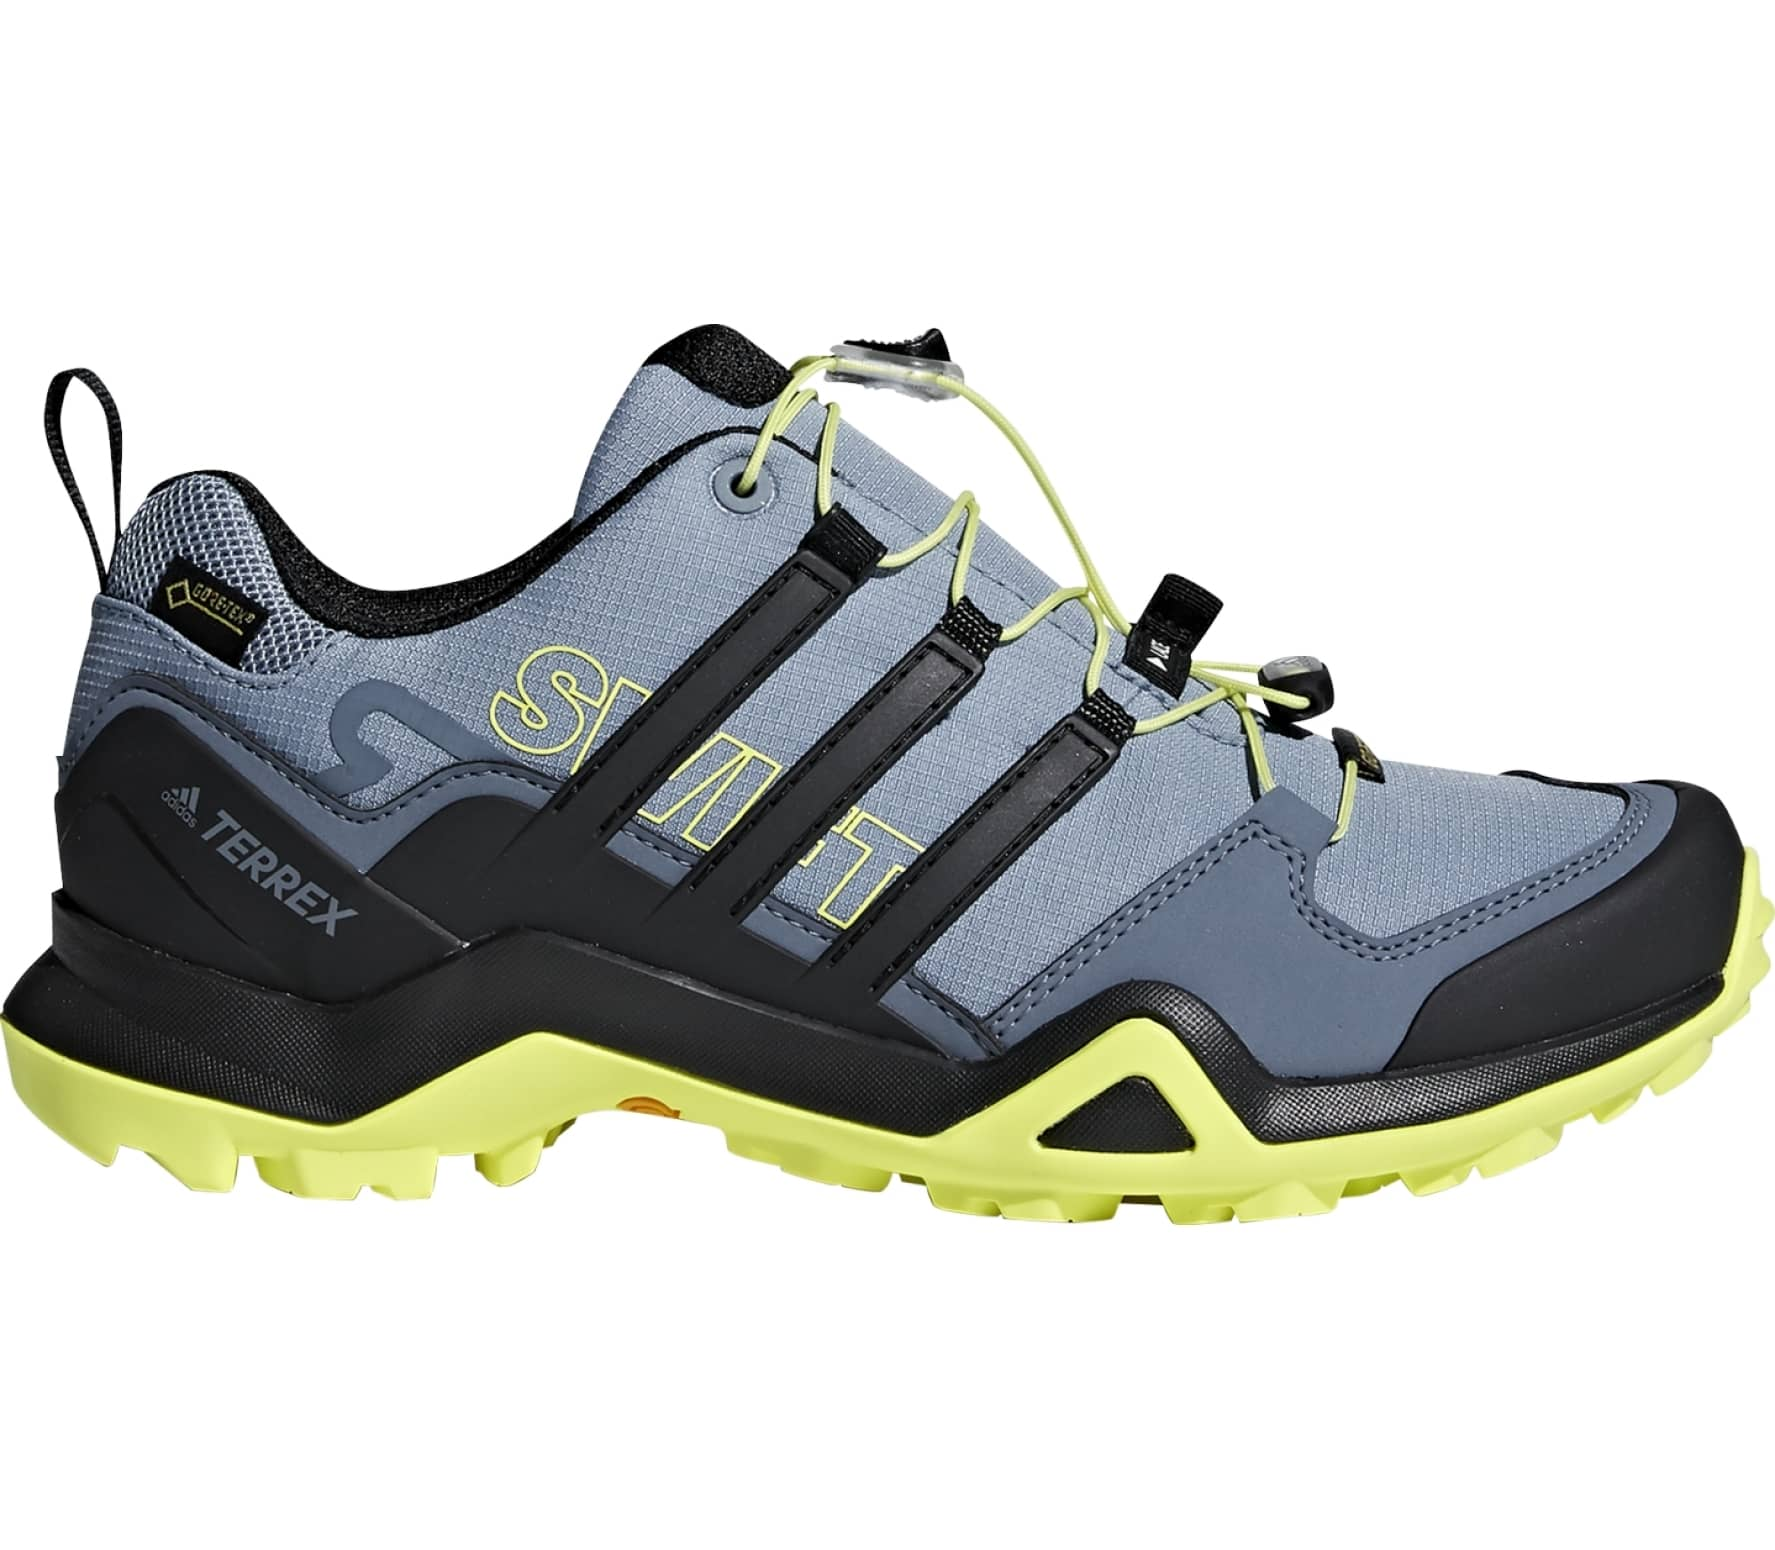 Adidas Terrex Swift R2 Gtx women's hiking shoes (blue yellow)